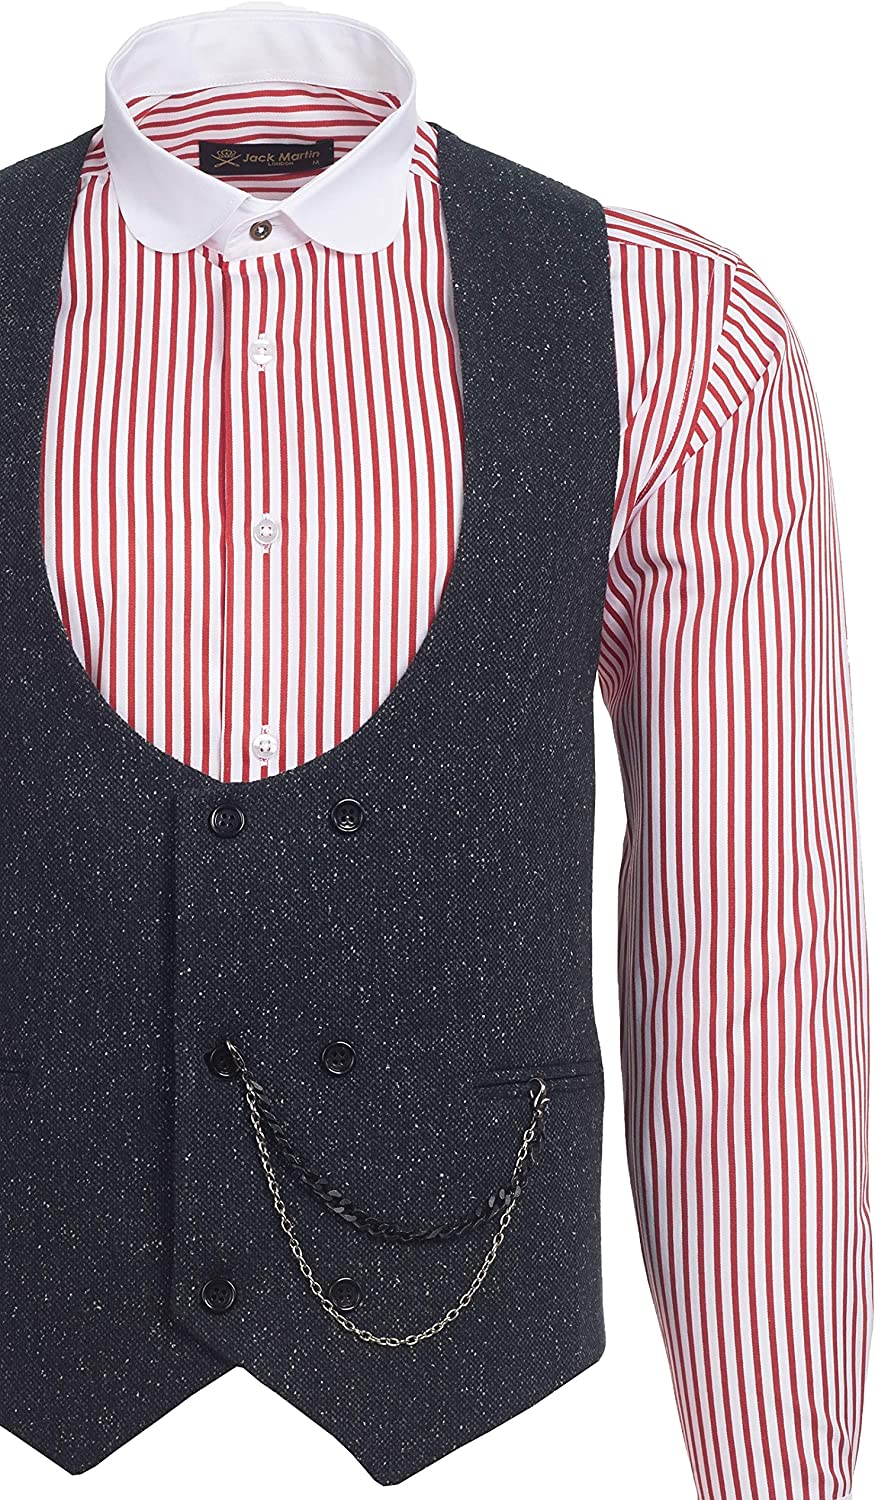 Jack Martin Ash Black Speckled Tweed Double Breasted Waistcoat